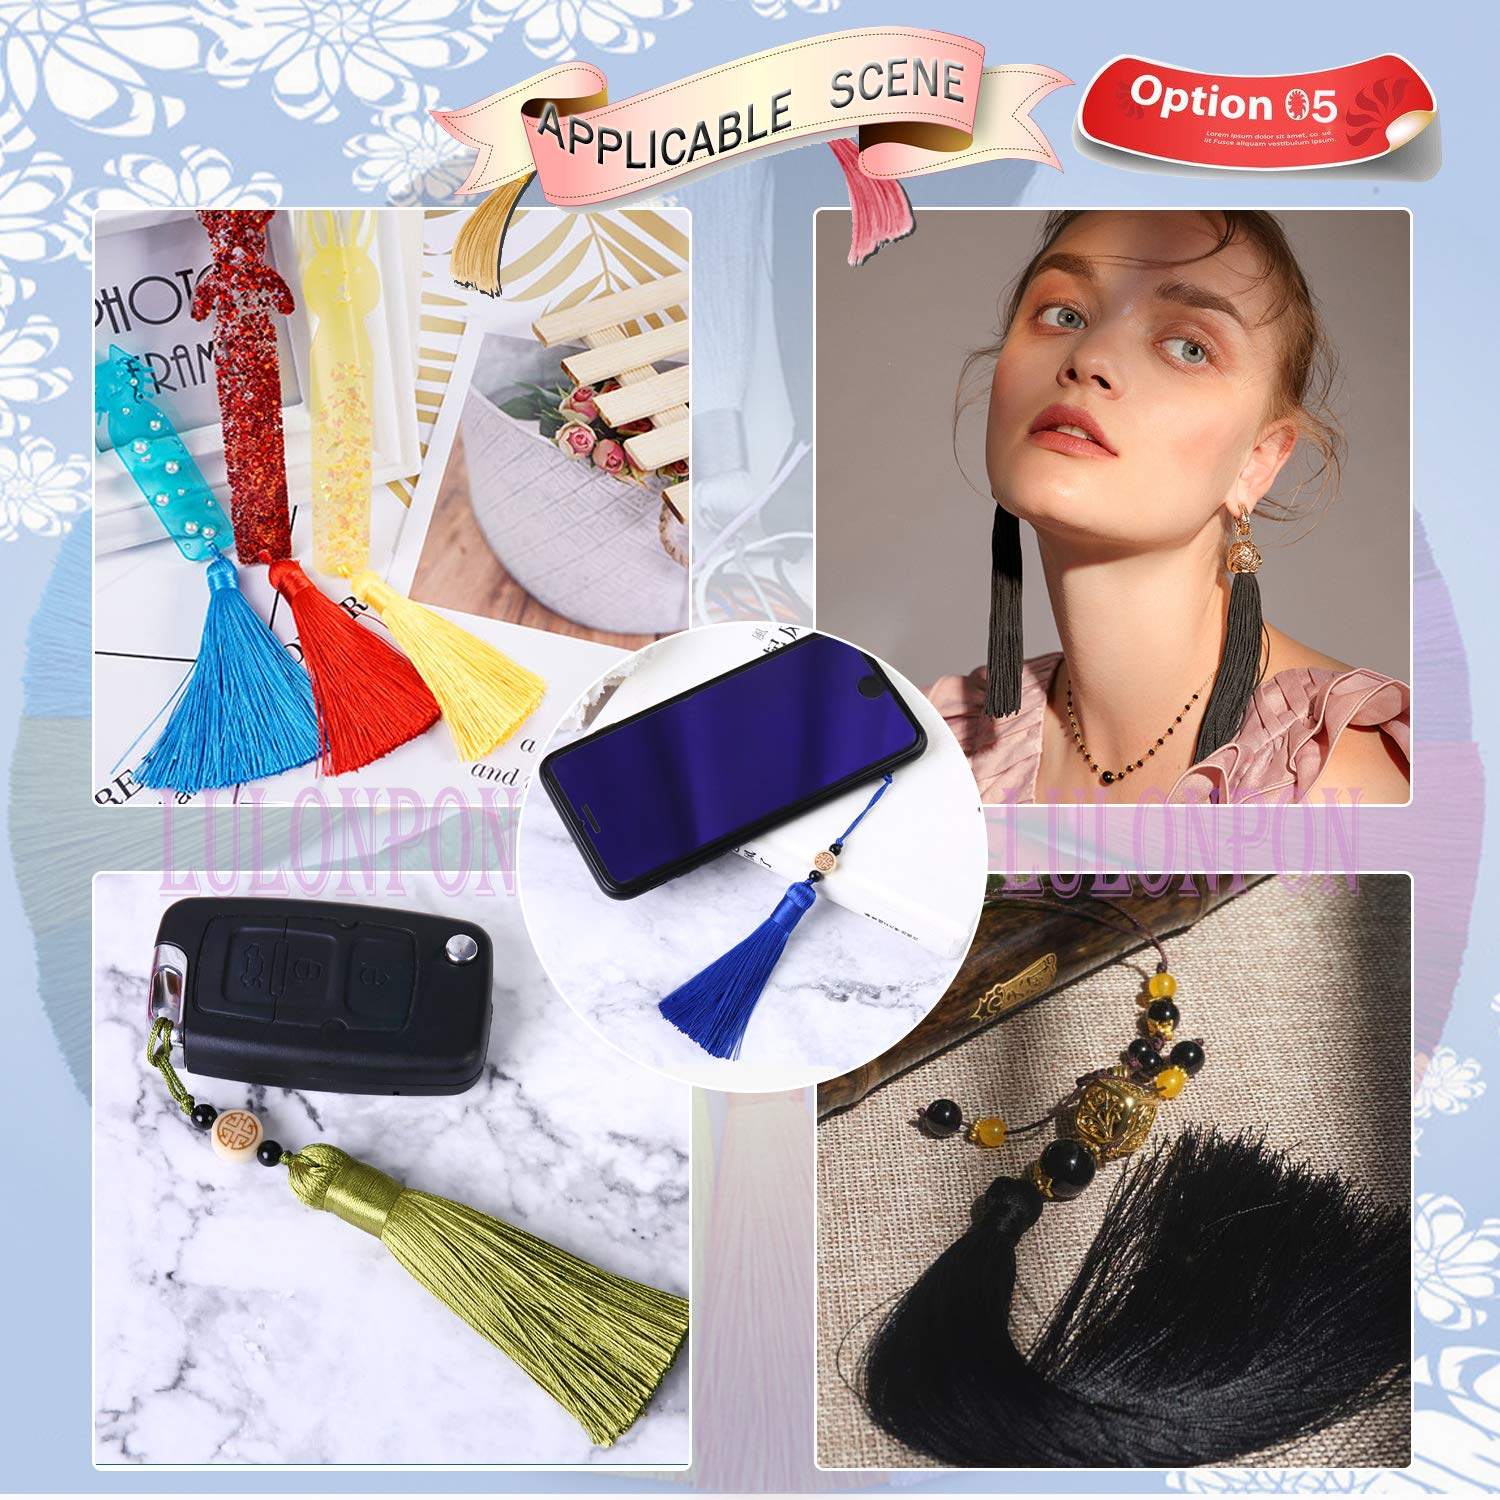 Black 10pcs-6.3in Lulonpon Ice Fringe Tassels,10 Pcs16cm//6.3in Wrinkle-Resistant Vertical Hanging Ears Bookmarks Clothing Hairpins Handcrafted Fur Jewelry DIY Project